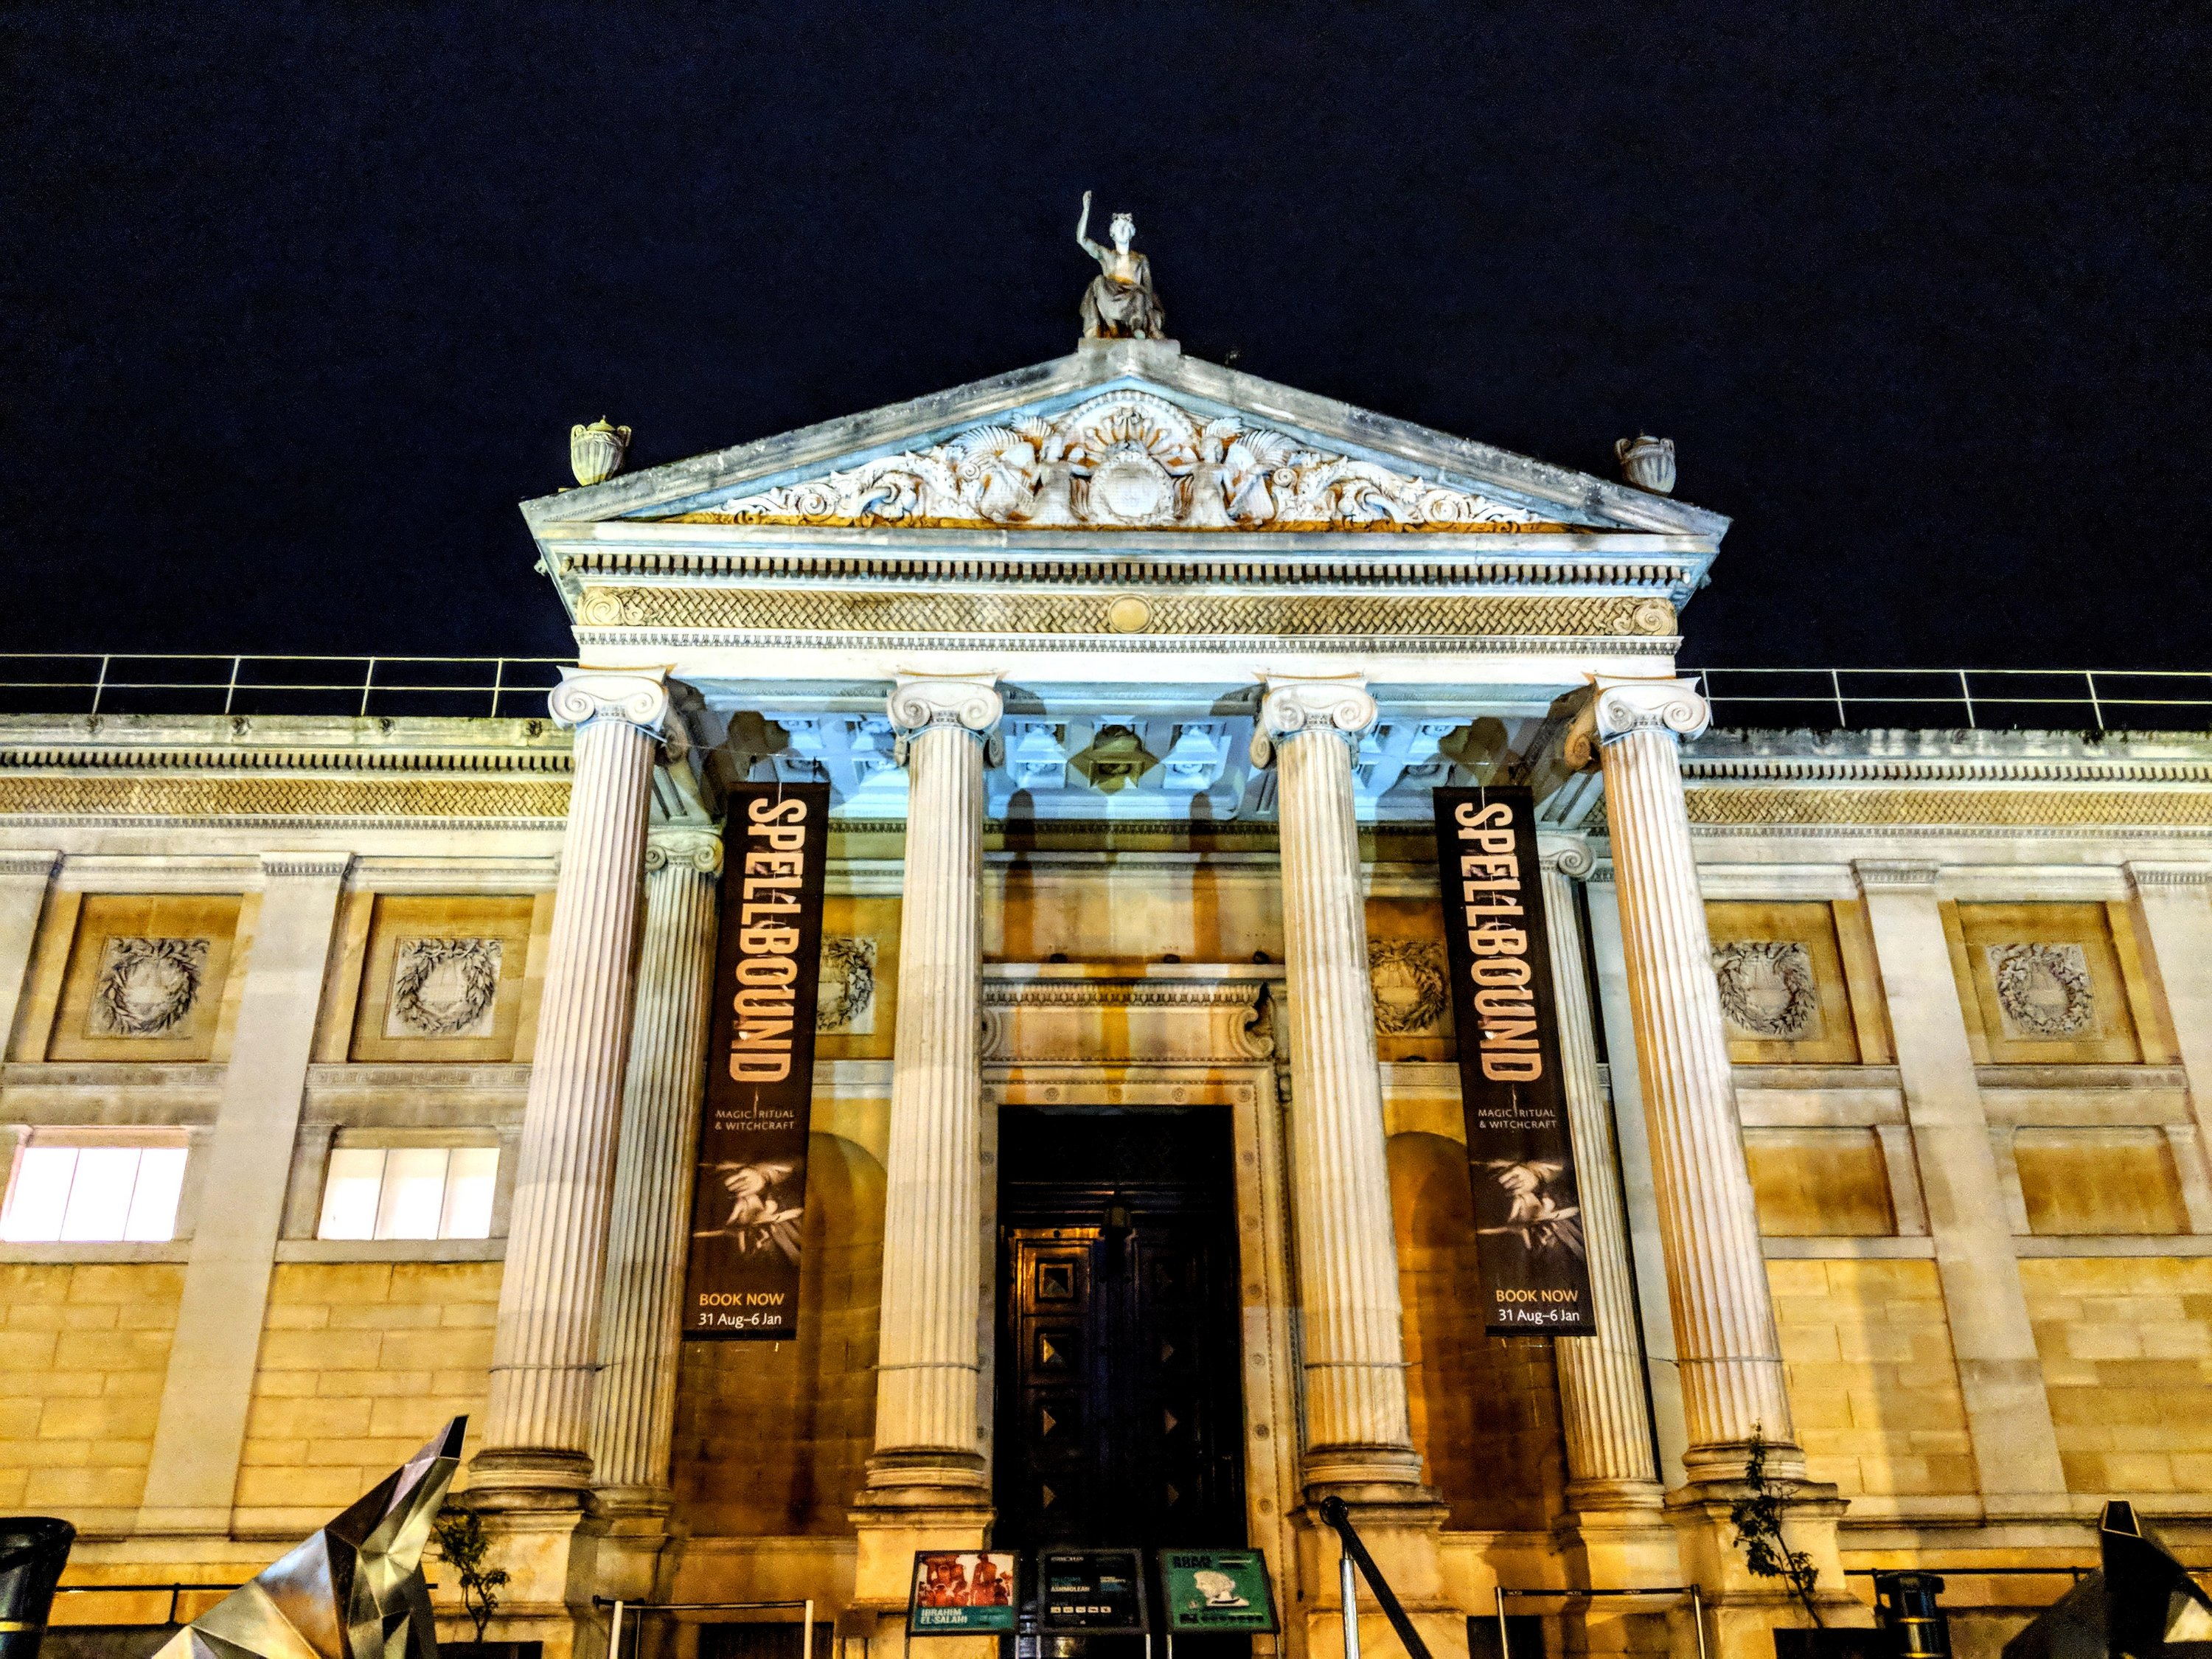 Spellbound exhibition at the Ashmolean in Oxford. This grand building looks extra special at night with the pillars all lit up. My visit to the Ashmolean was prior to a private screening of the very first episode of A Discovery of Witches TV series